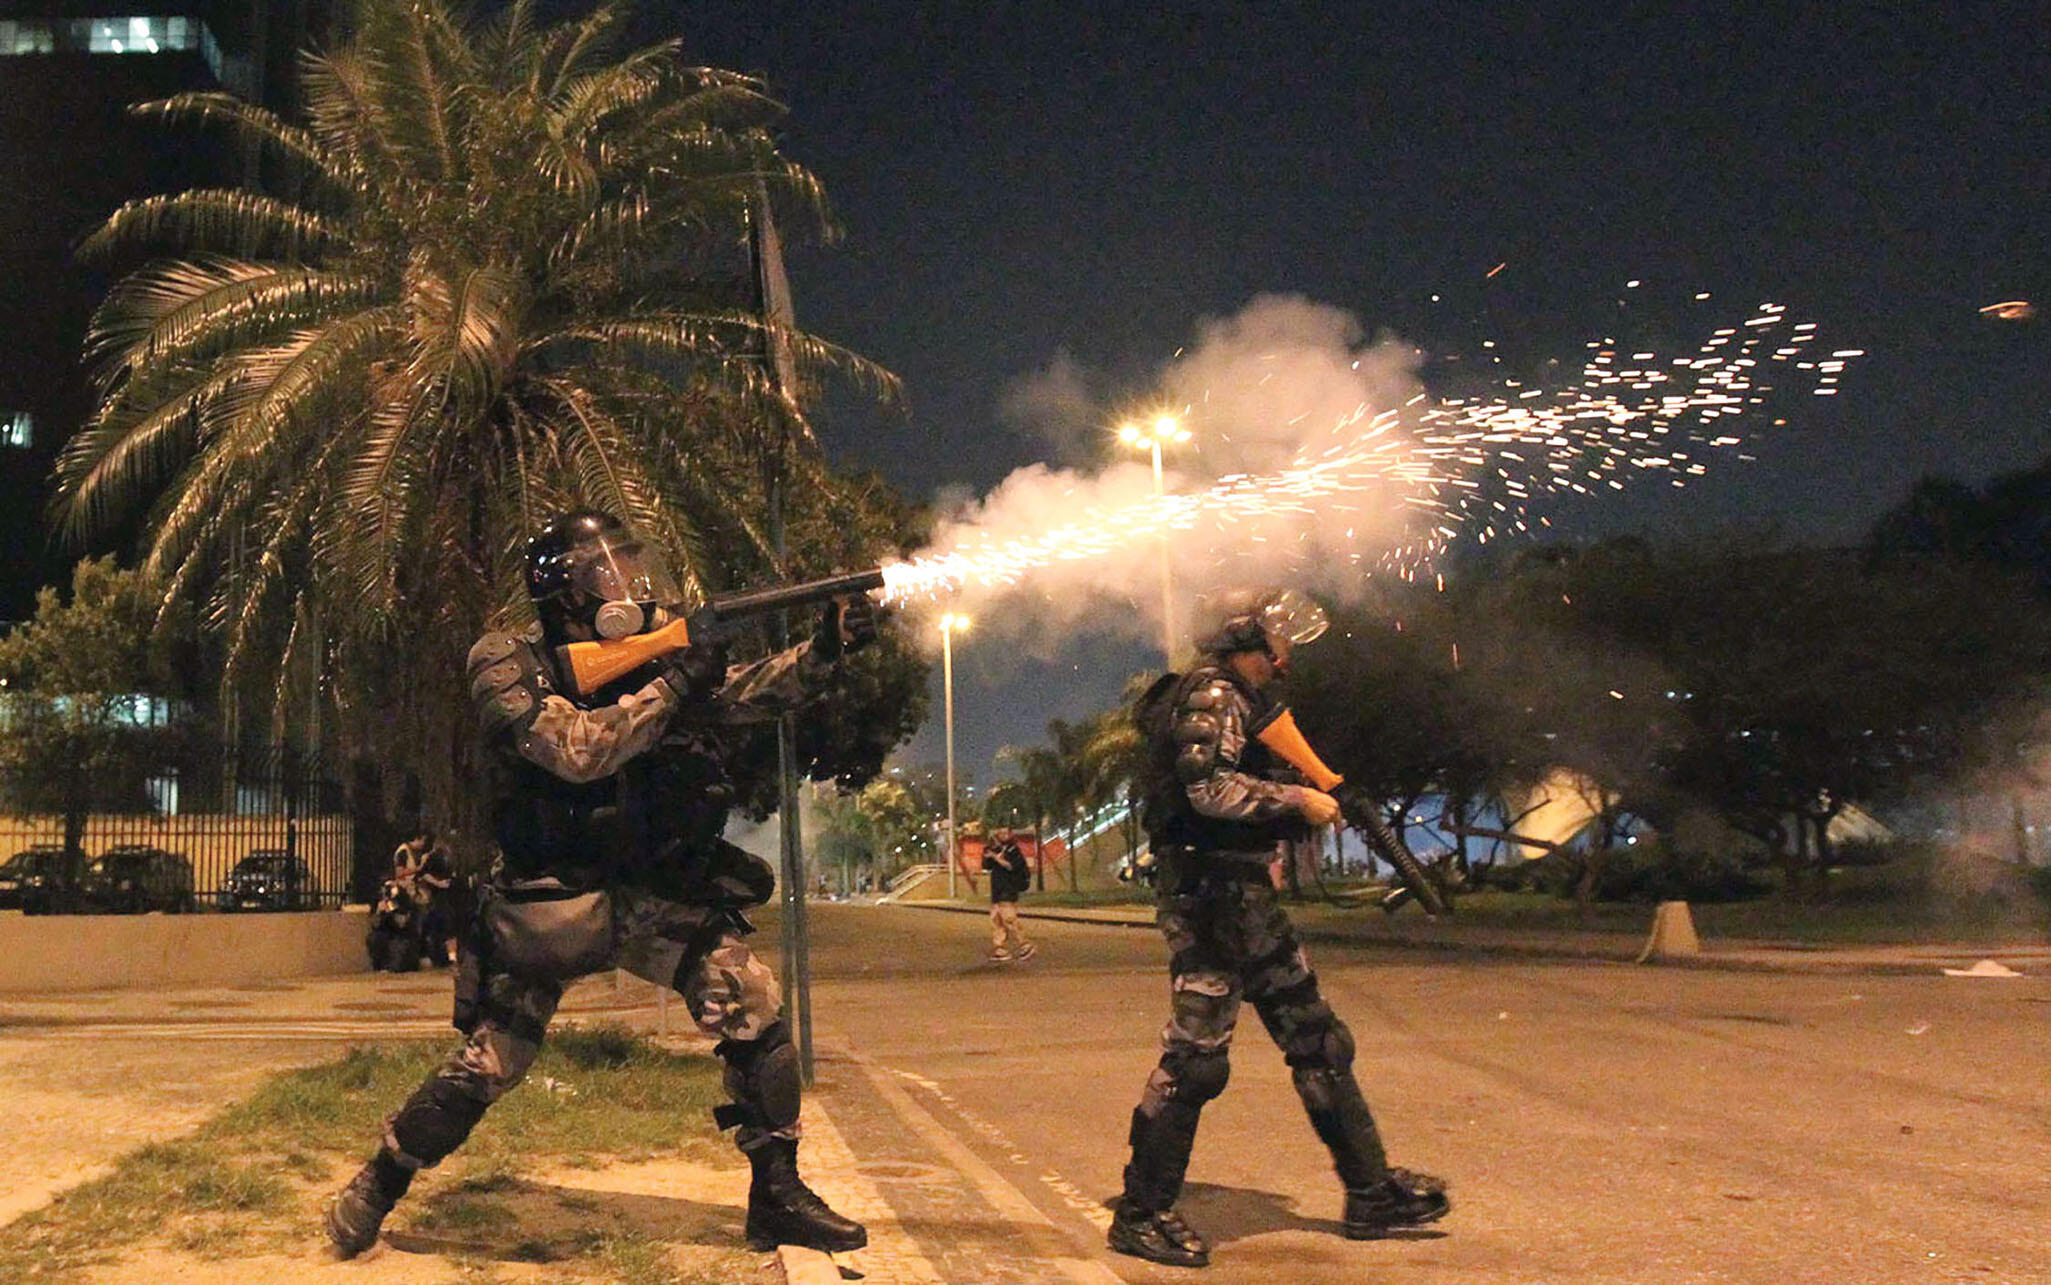 Police fire tear gas grenades during 2013 protests in Brasilia. (Photo by Semilla Luz.)